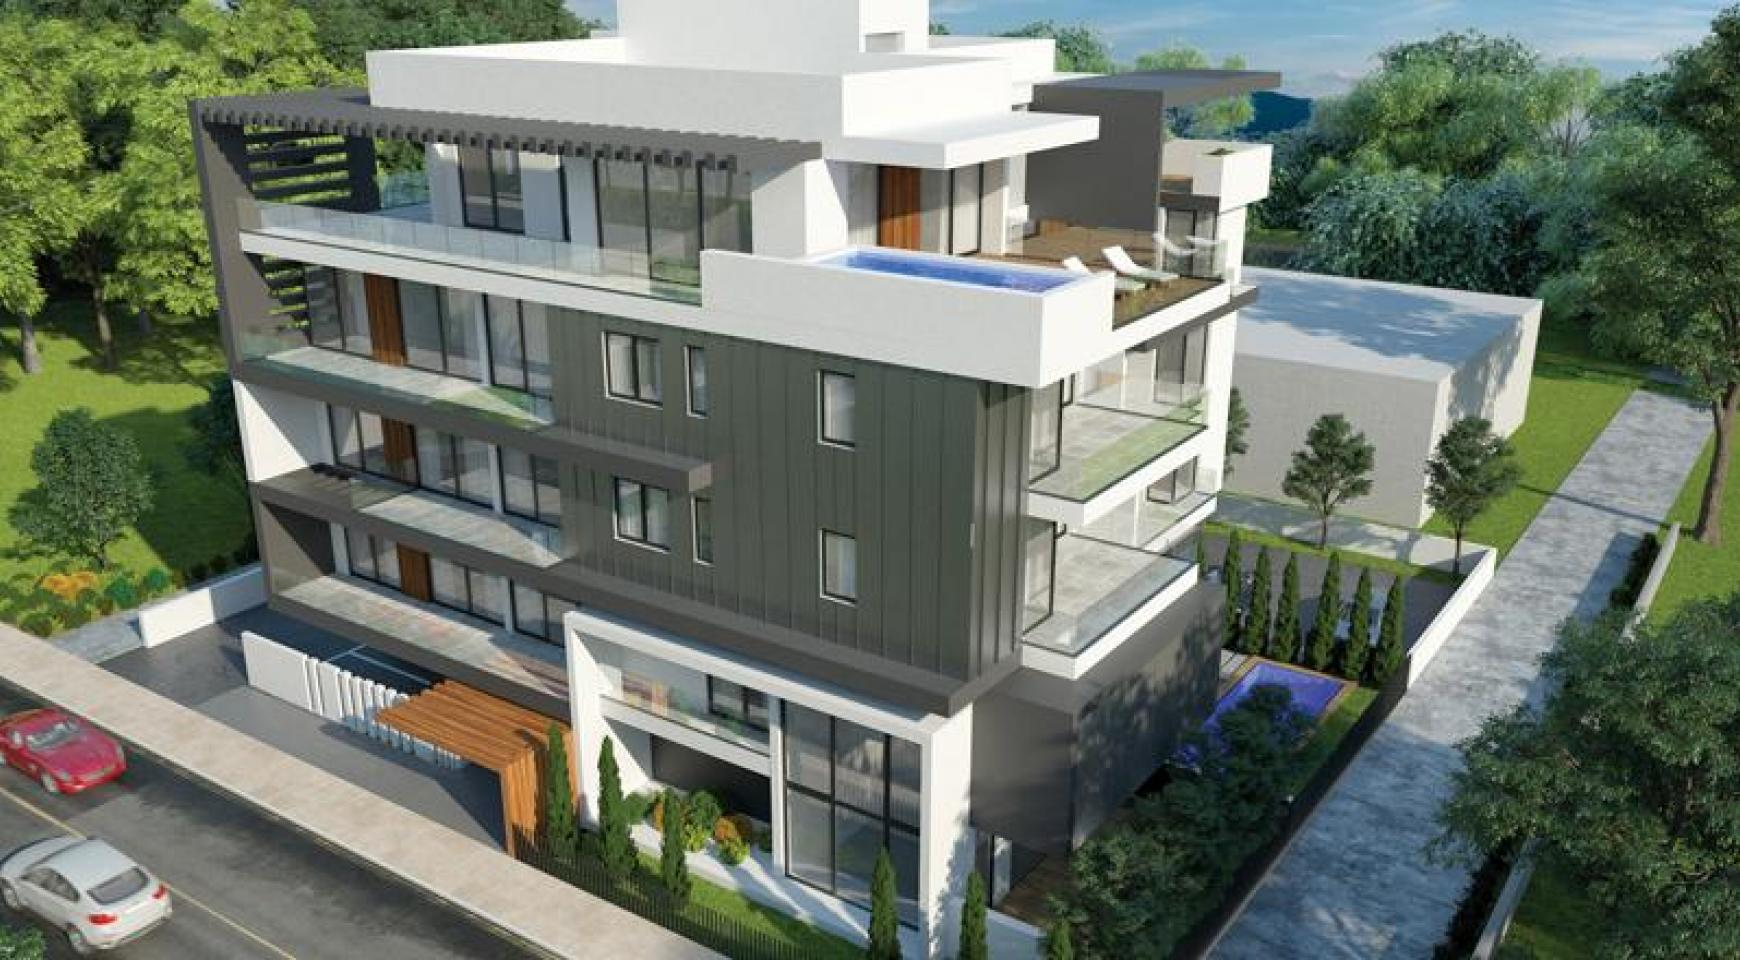 New 3 Bedroom Apartment in a Modern Development near the Sea - 3